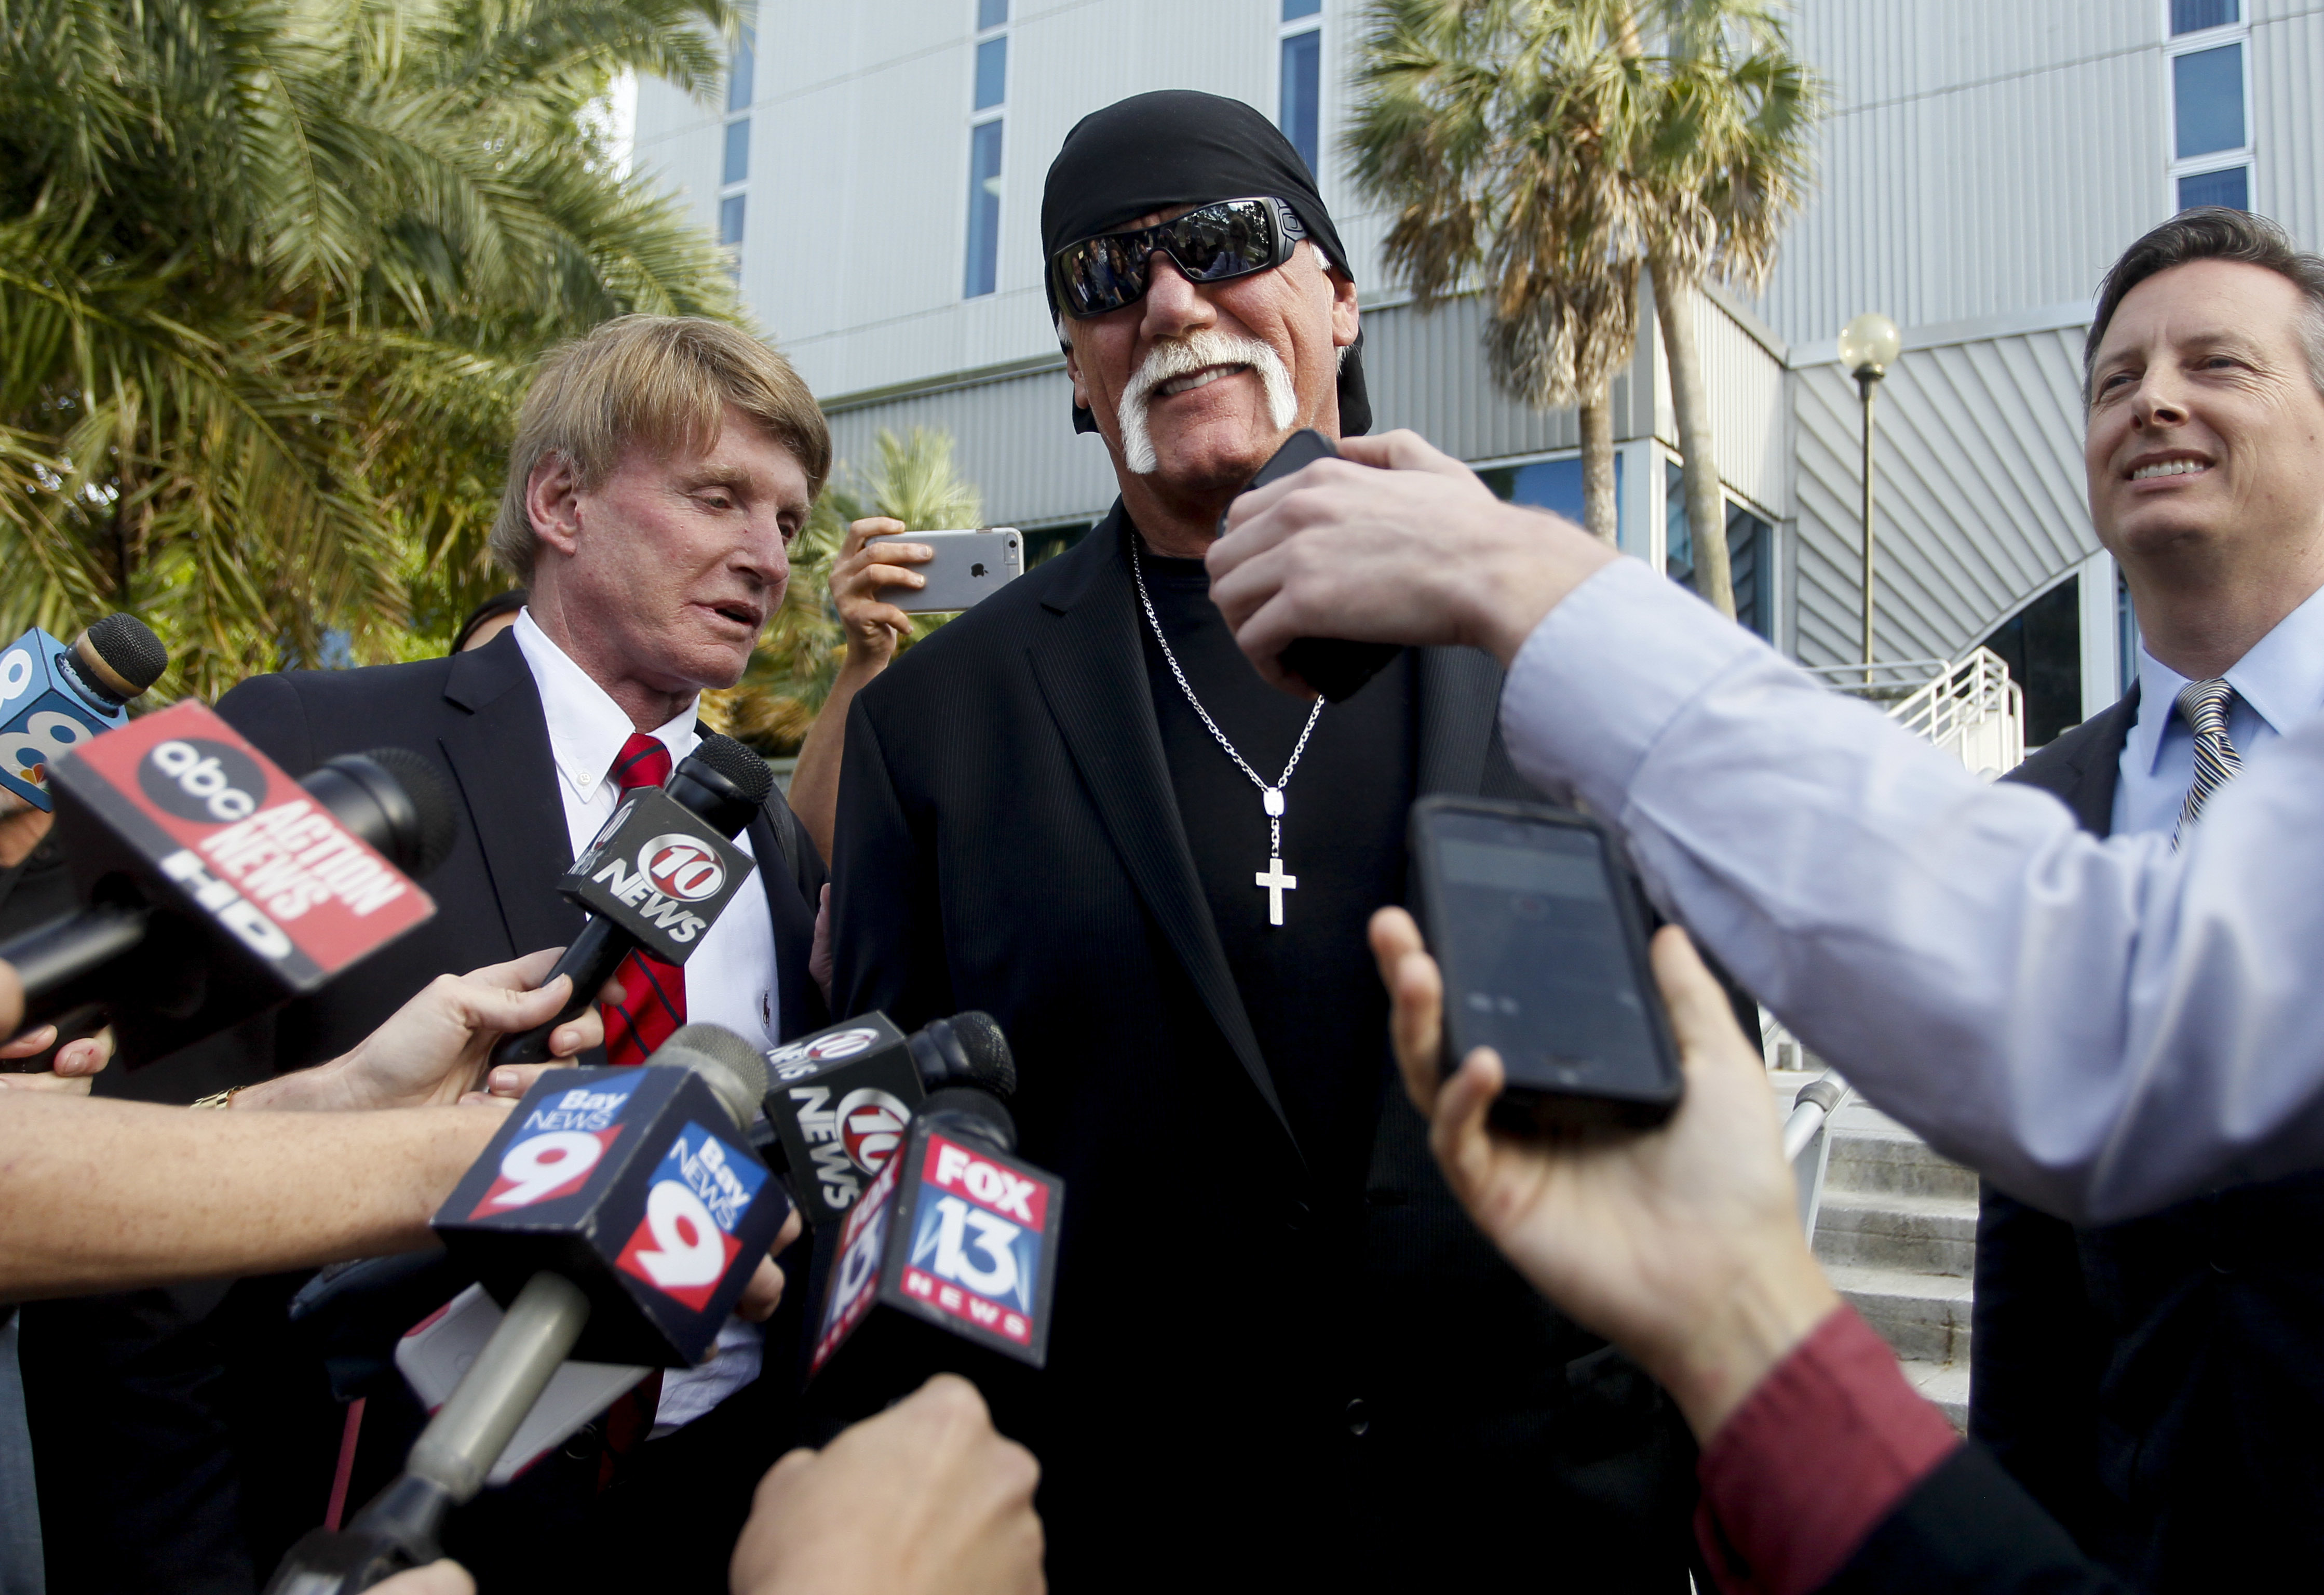 "FILE - In this March 21, 2016, file photo, Hulk Hogan, whose given name is Terry Bollea, speaks to the media St. Petersburg, Fla. Banished nearly three years ago from the wrestling organization in disgrace, the Hulkster is holding out hope for a reunion this year with the sports entertainment giant. Hogan would love to bust out the red-and-yellow colors for the ""Raw"" 25th anniversary show on Monday, Jan. 22, 2018, and join fellow wrestling greats in celebration of WWE's longest-running show. (Dirk Shadd/The Tampa Bay Times via AP, File)"